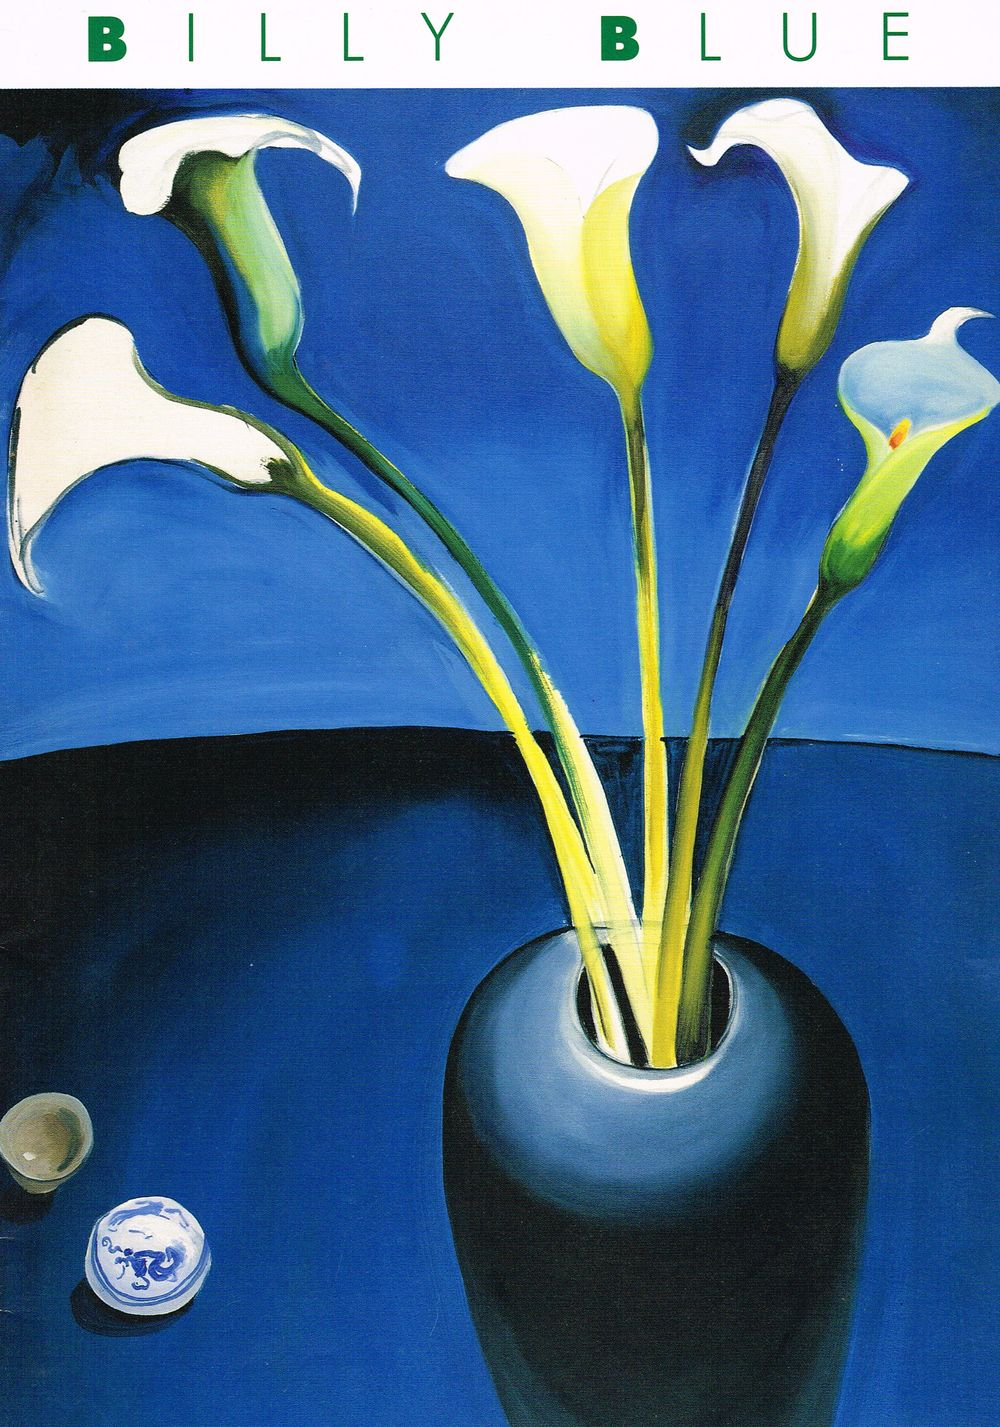 Billy Blue cover Lochhart lillies.jpg